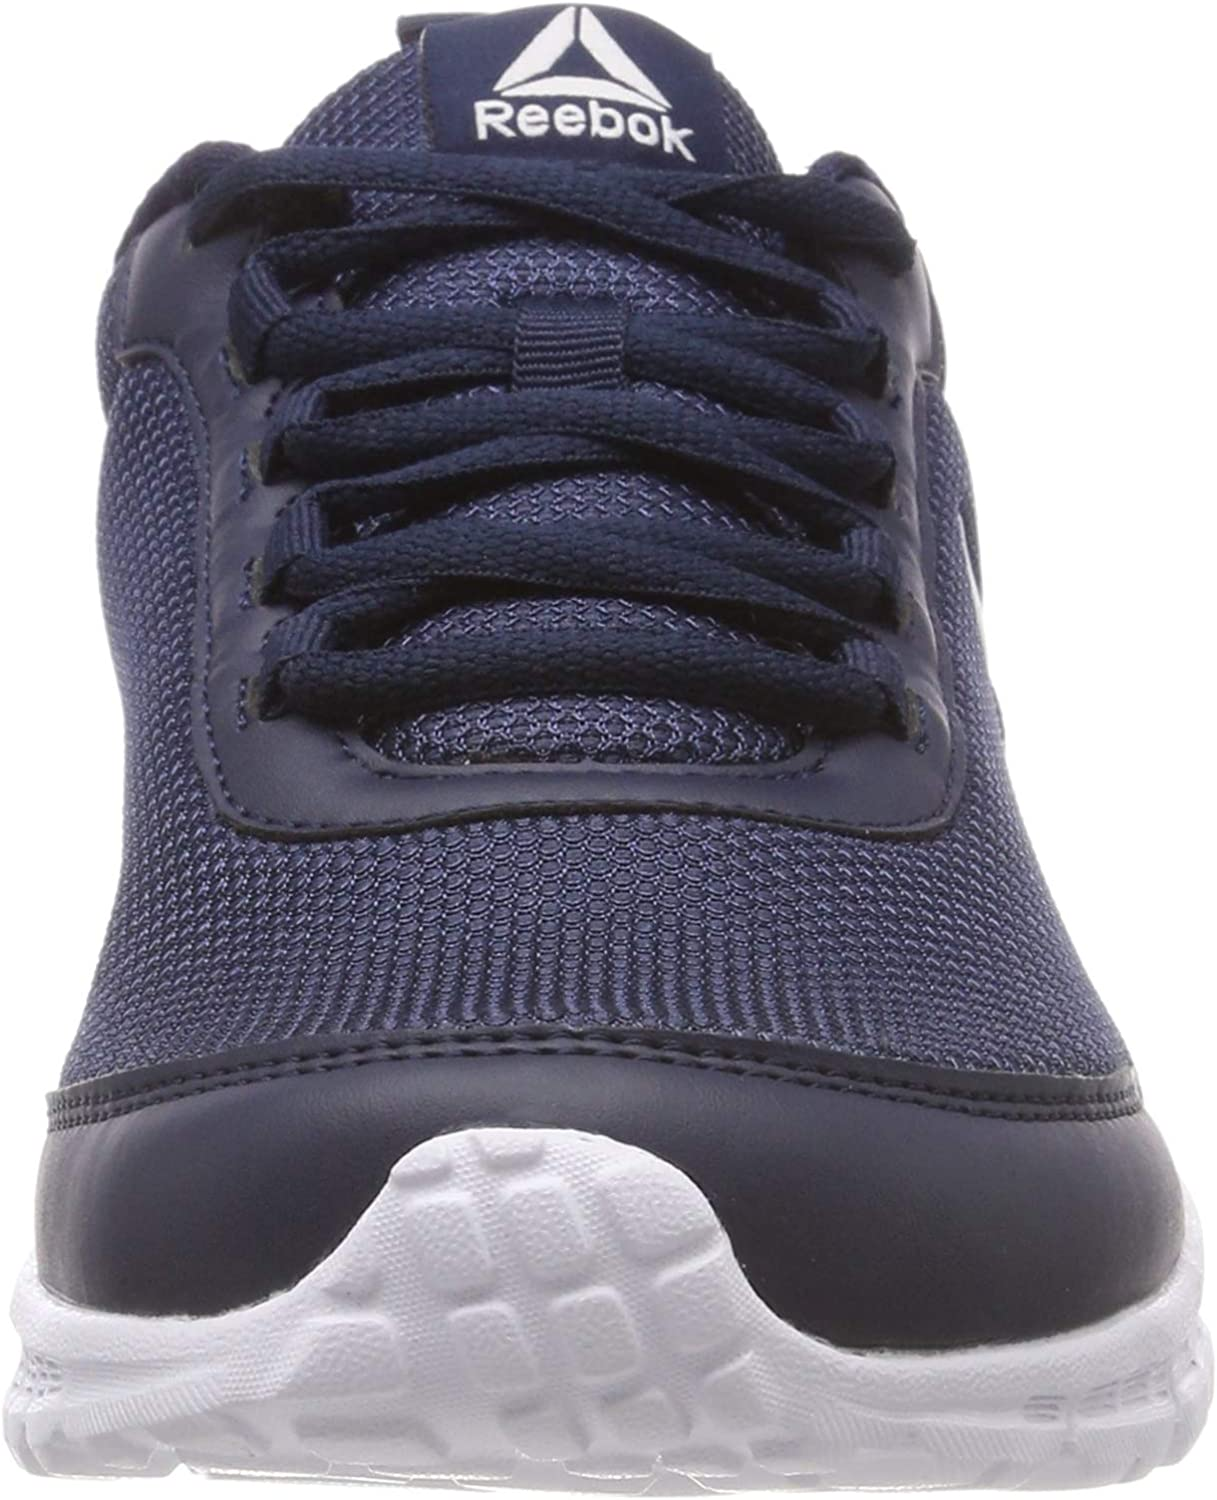 Reebok Speedlux 3.0, Zapatillas de Running para Hombre, Azul (Collegiate Navy/White Collegiate Navy/White), 47 EU: Amazon.es: Zapatos y complementos